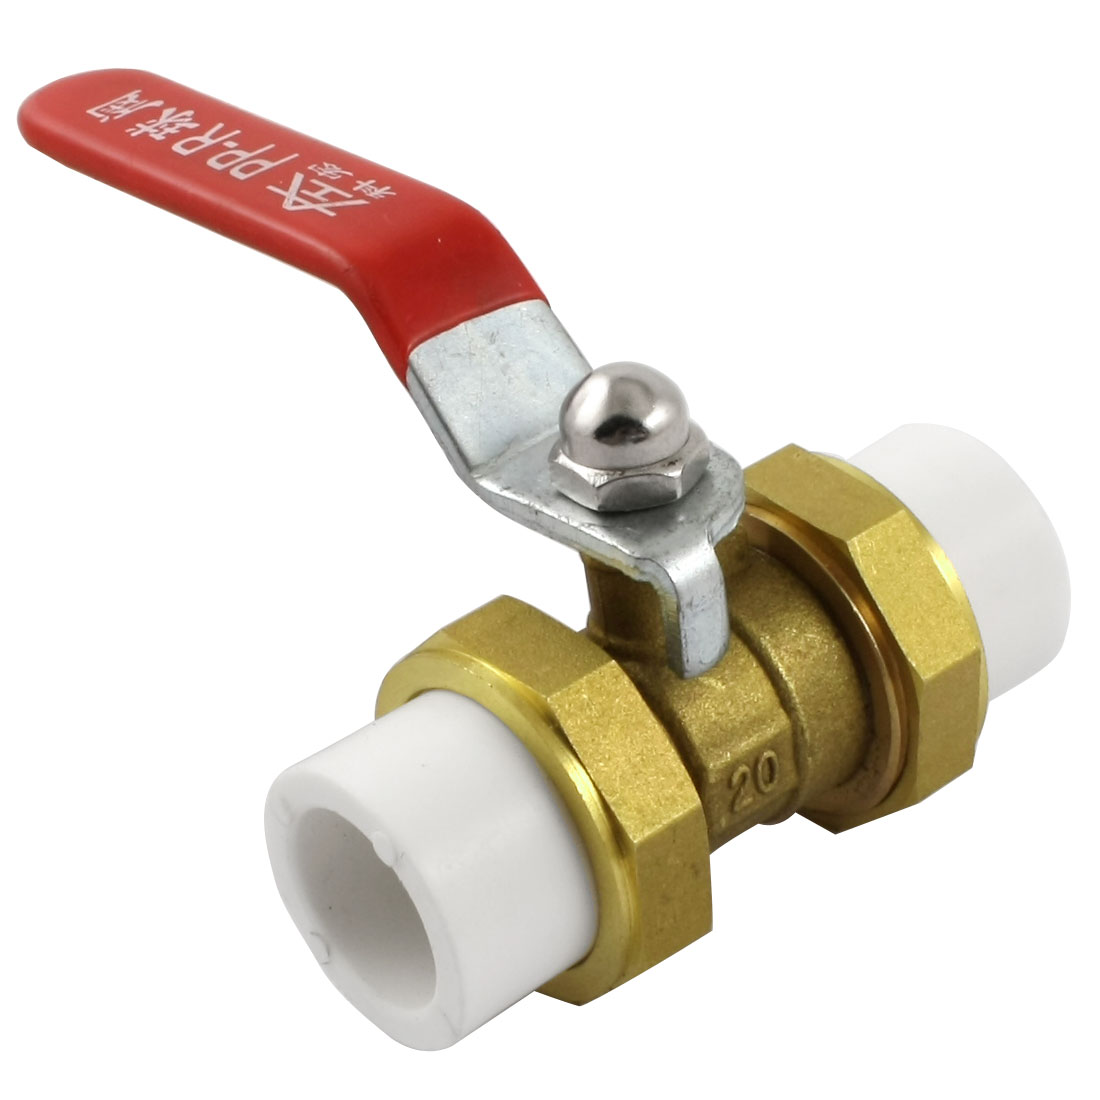 Double Headed 19mm to 19mm Red Lever Handle Brass PPR Ball Valve